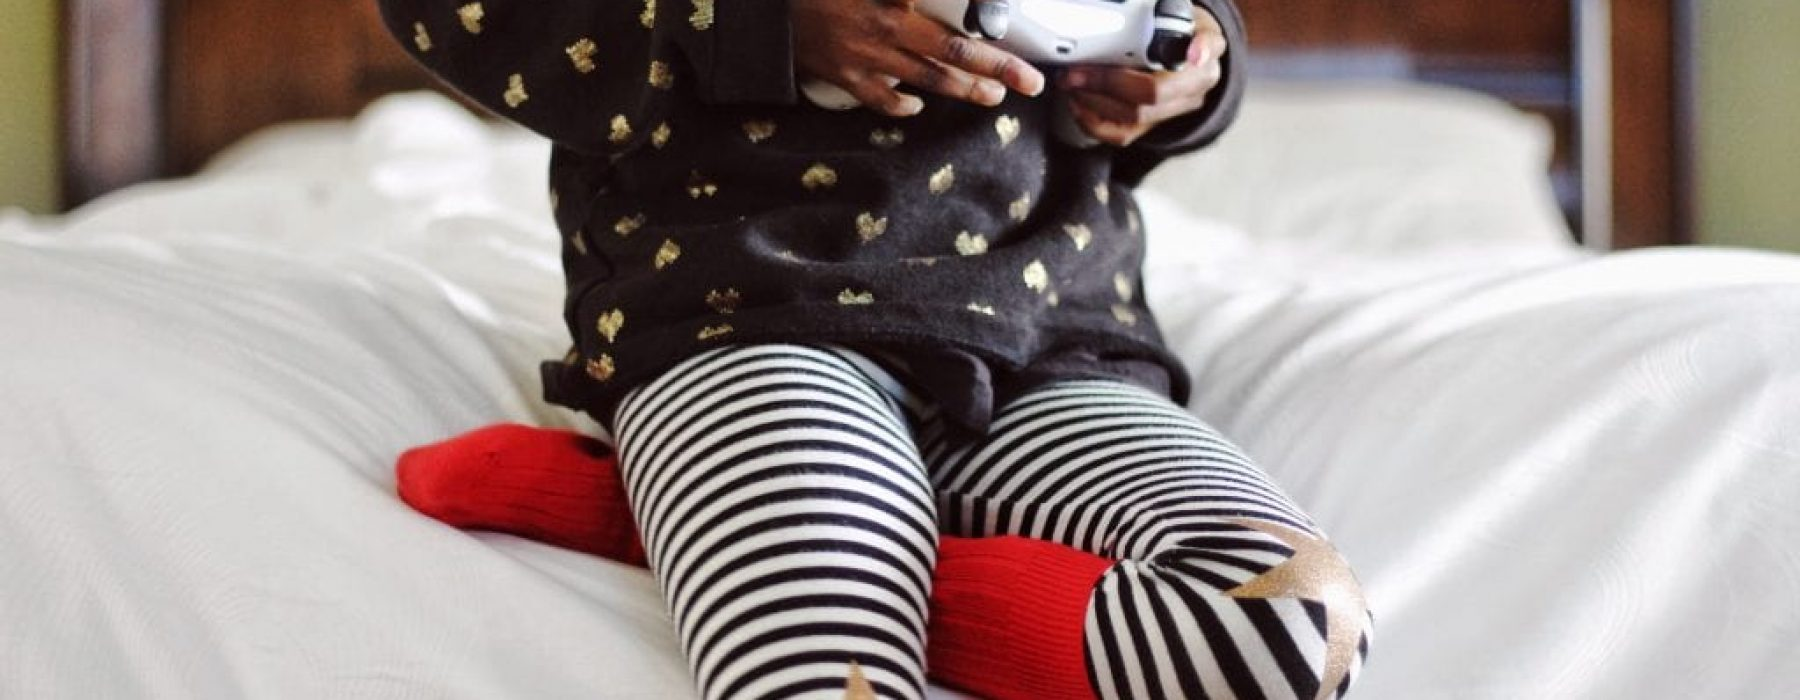 Effect of screentime on kids